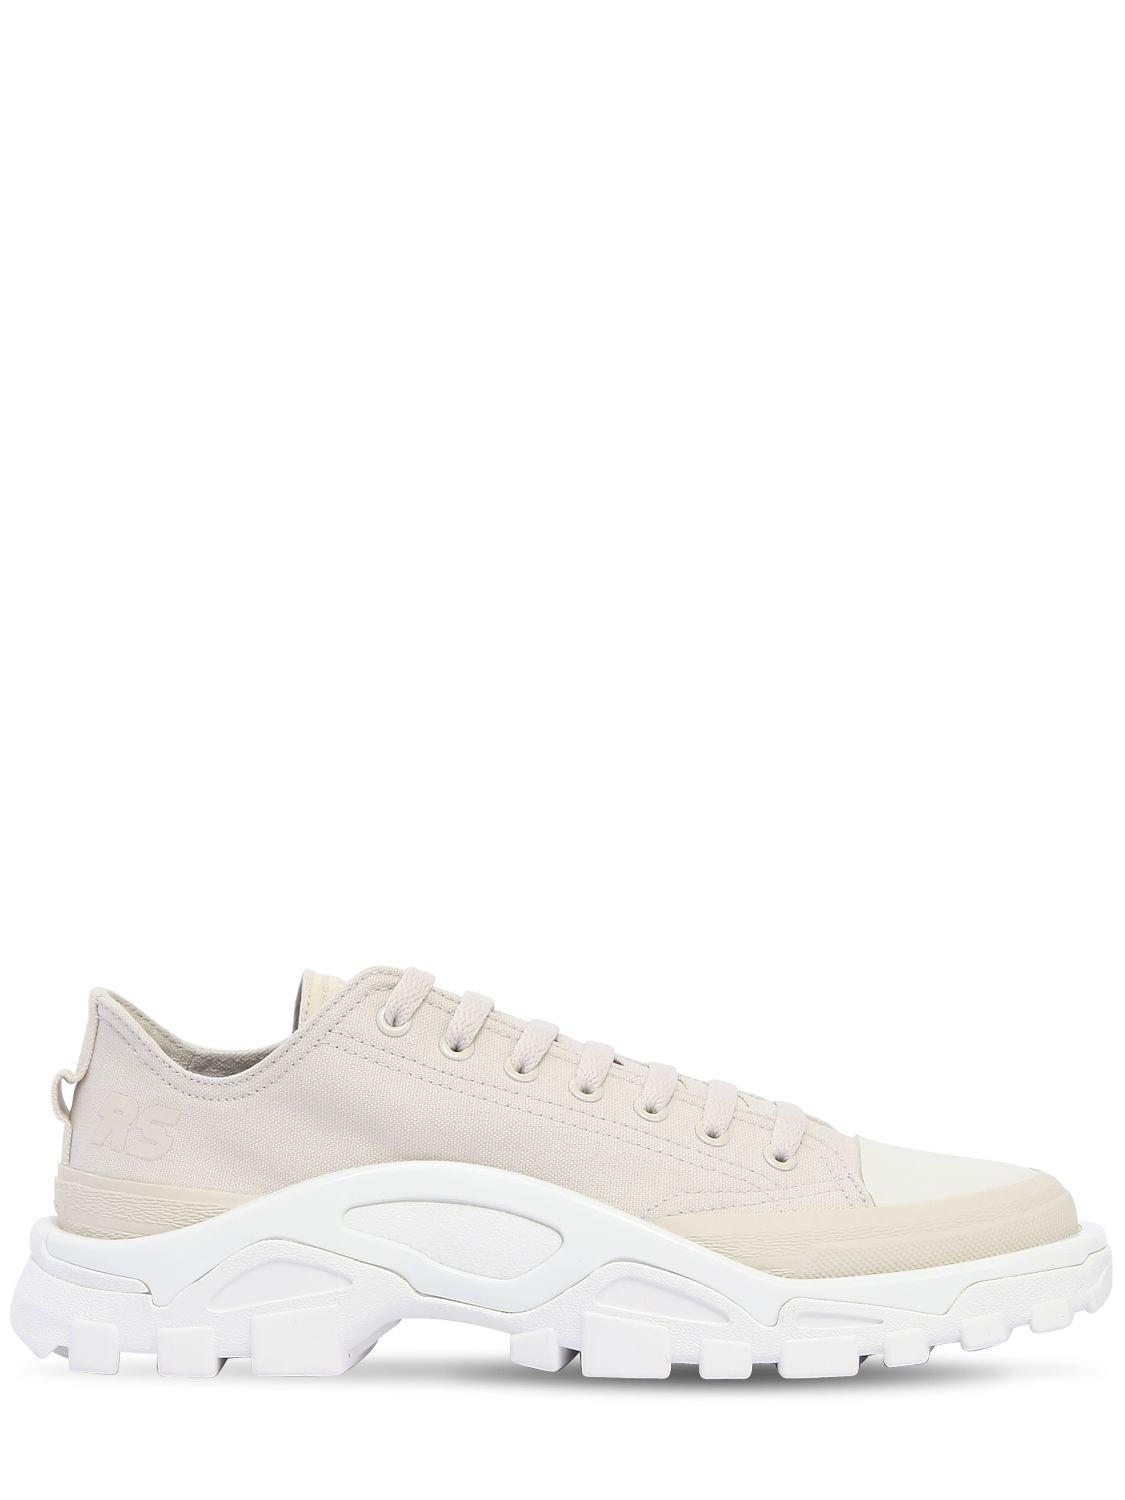 reputable site 1acd2 15690 adidas By Raf Simons. Mens White Rs Detroit Runner Sneakers